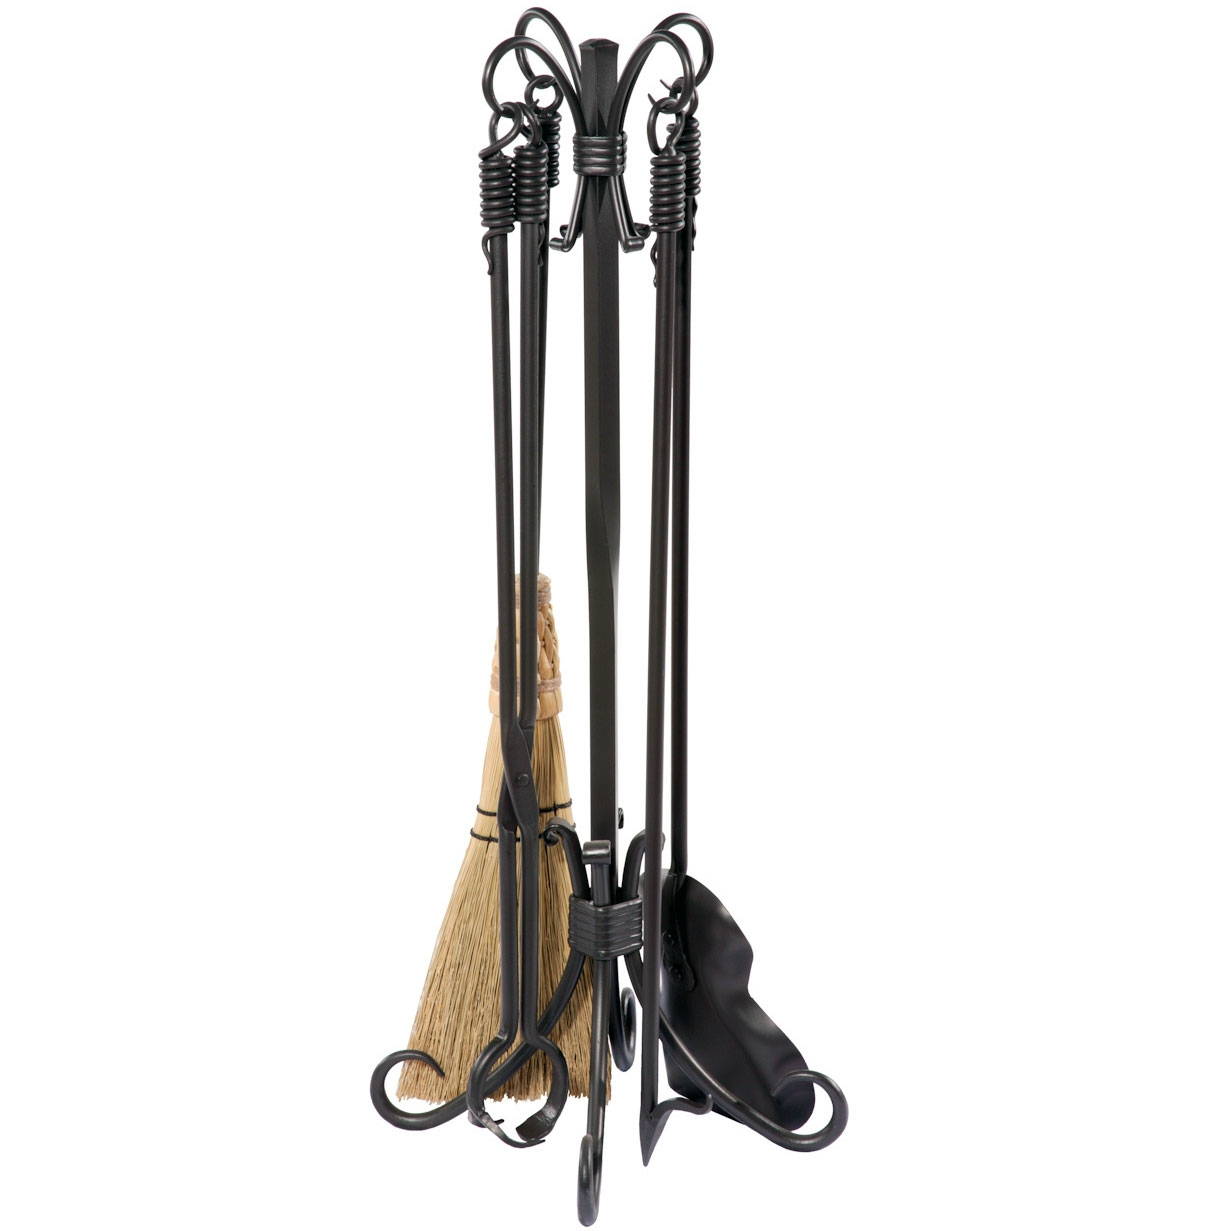 Pictured here is the Phoenix Fireplace Tool Set with a